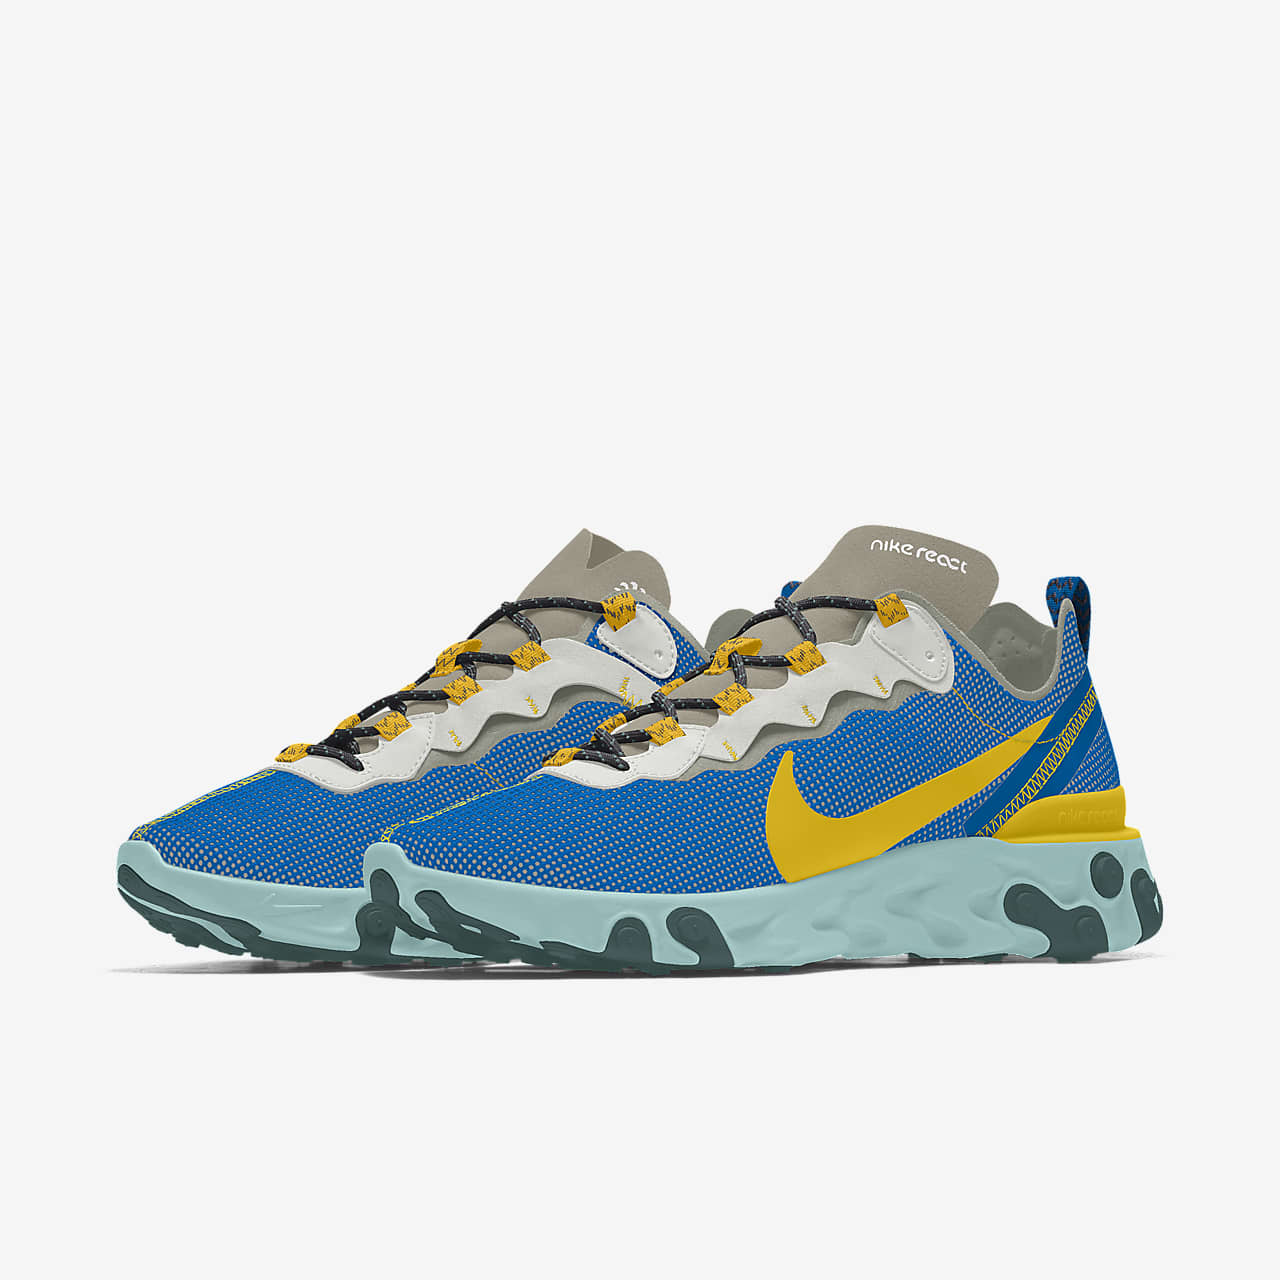 NFL: Shop Nike React Element 55 sneakers